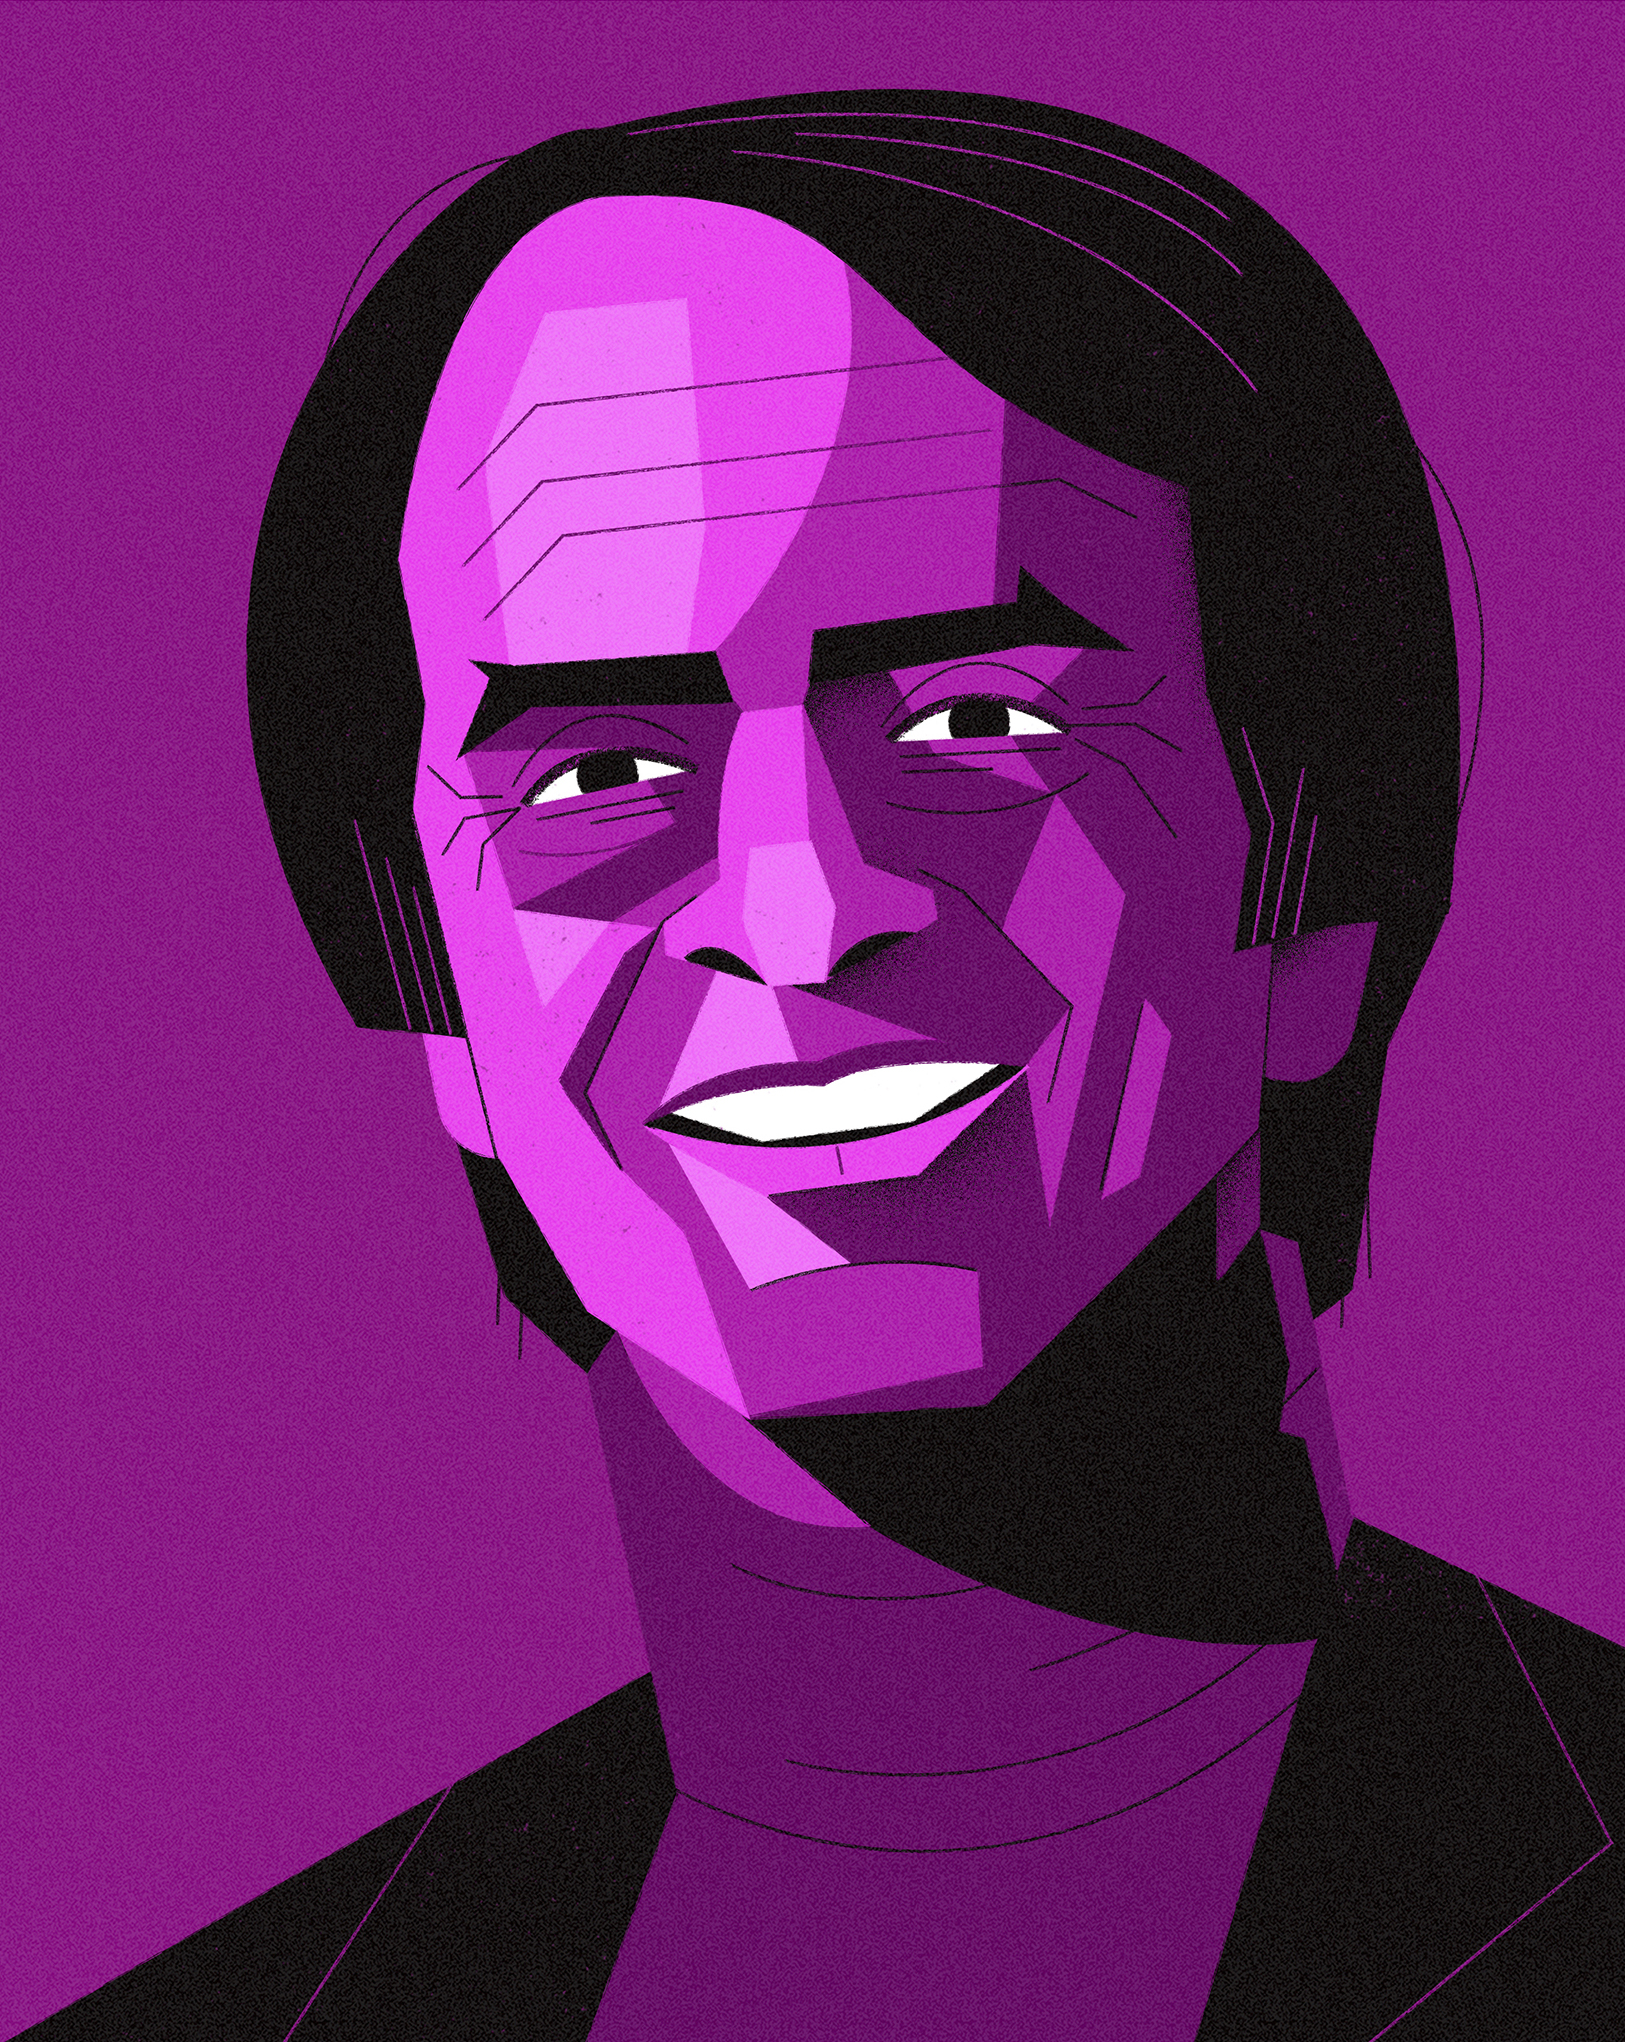 dale edwin murray freelance illustrator tryke carl sagan weed illustration